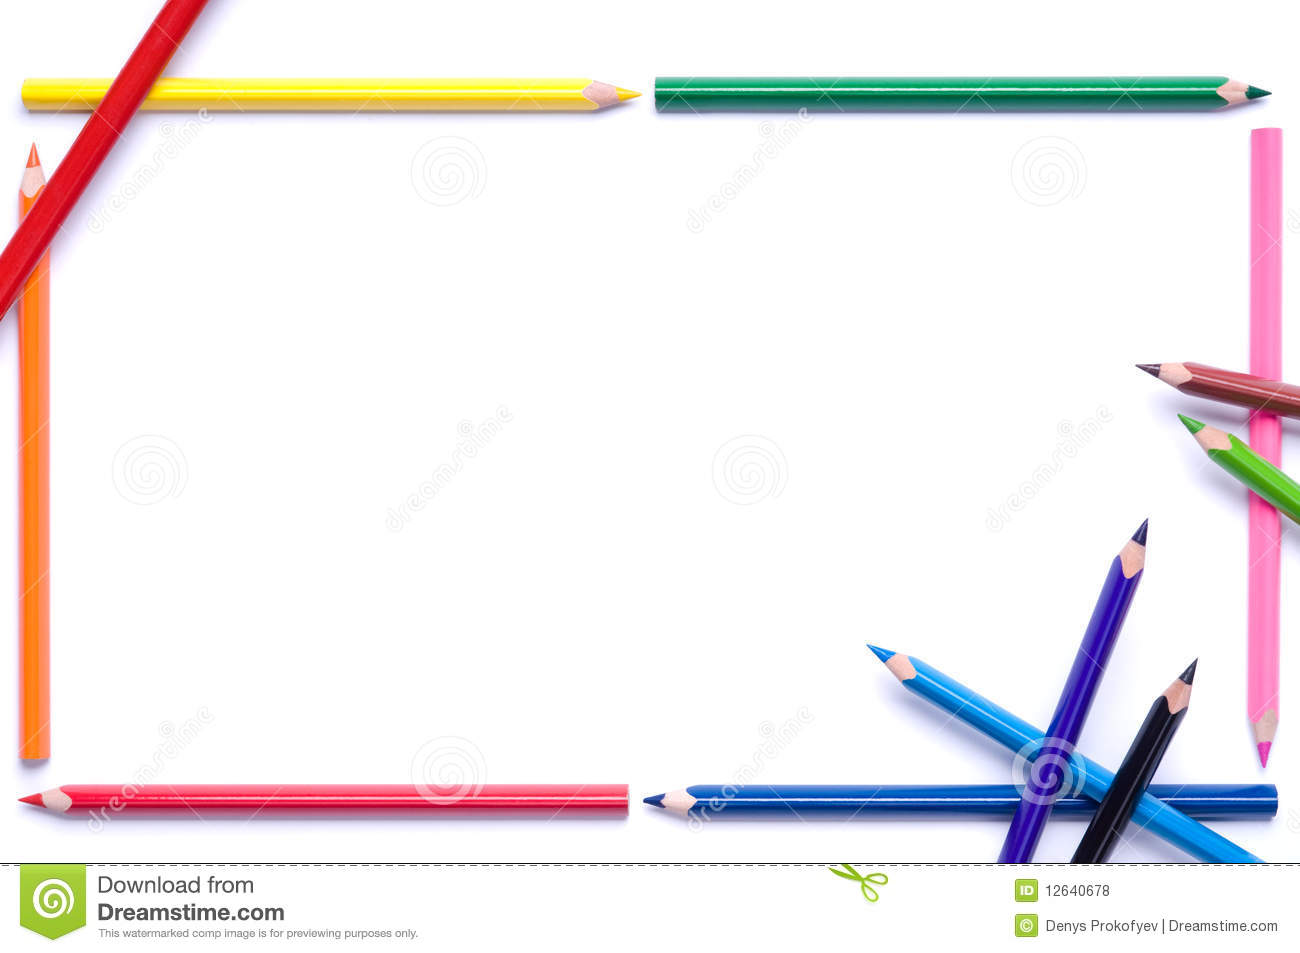 Royalty Free Stock Photos Pencils Frame Image12640678 on Yellow Objects Clipart For Kids